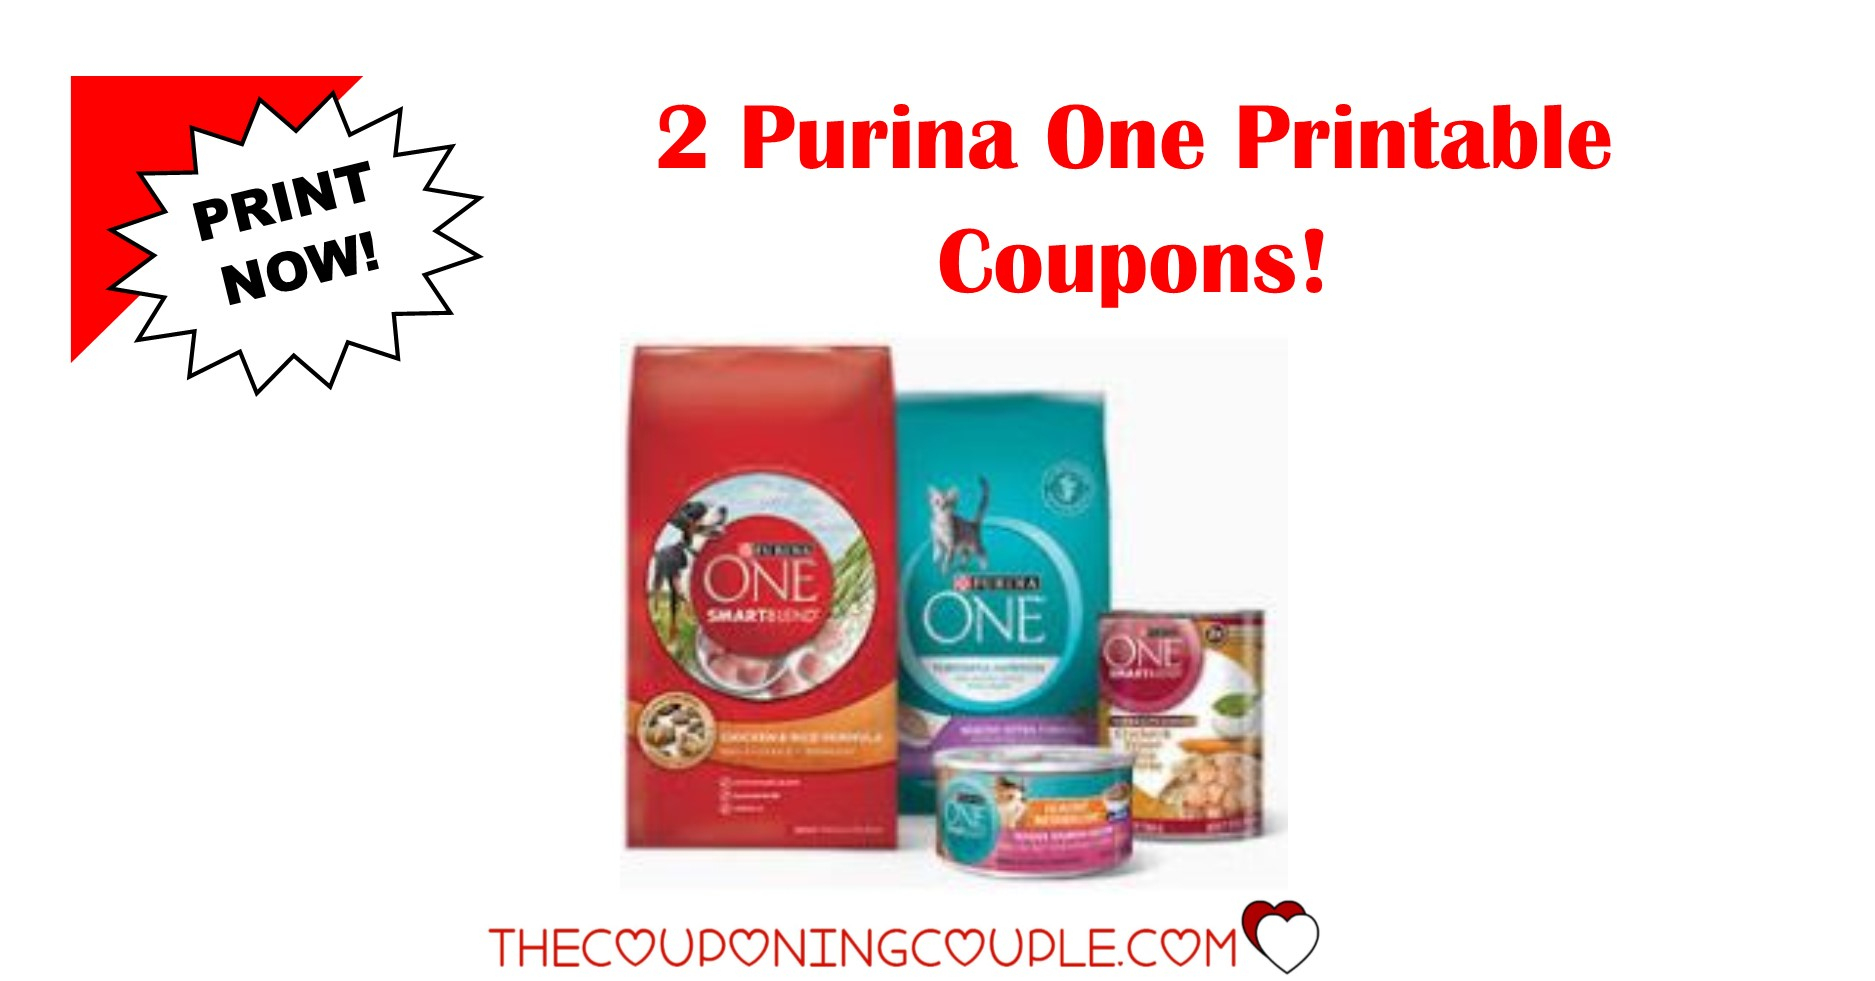 2 Purina One Printable Coupons ~ Both Coupons Are B1G1! - Free Printable Coupons For Food